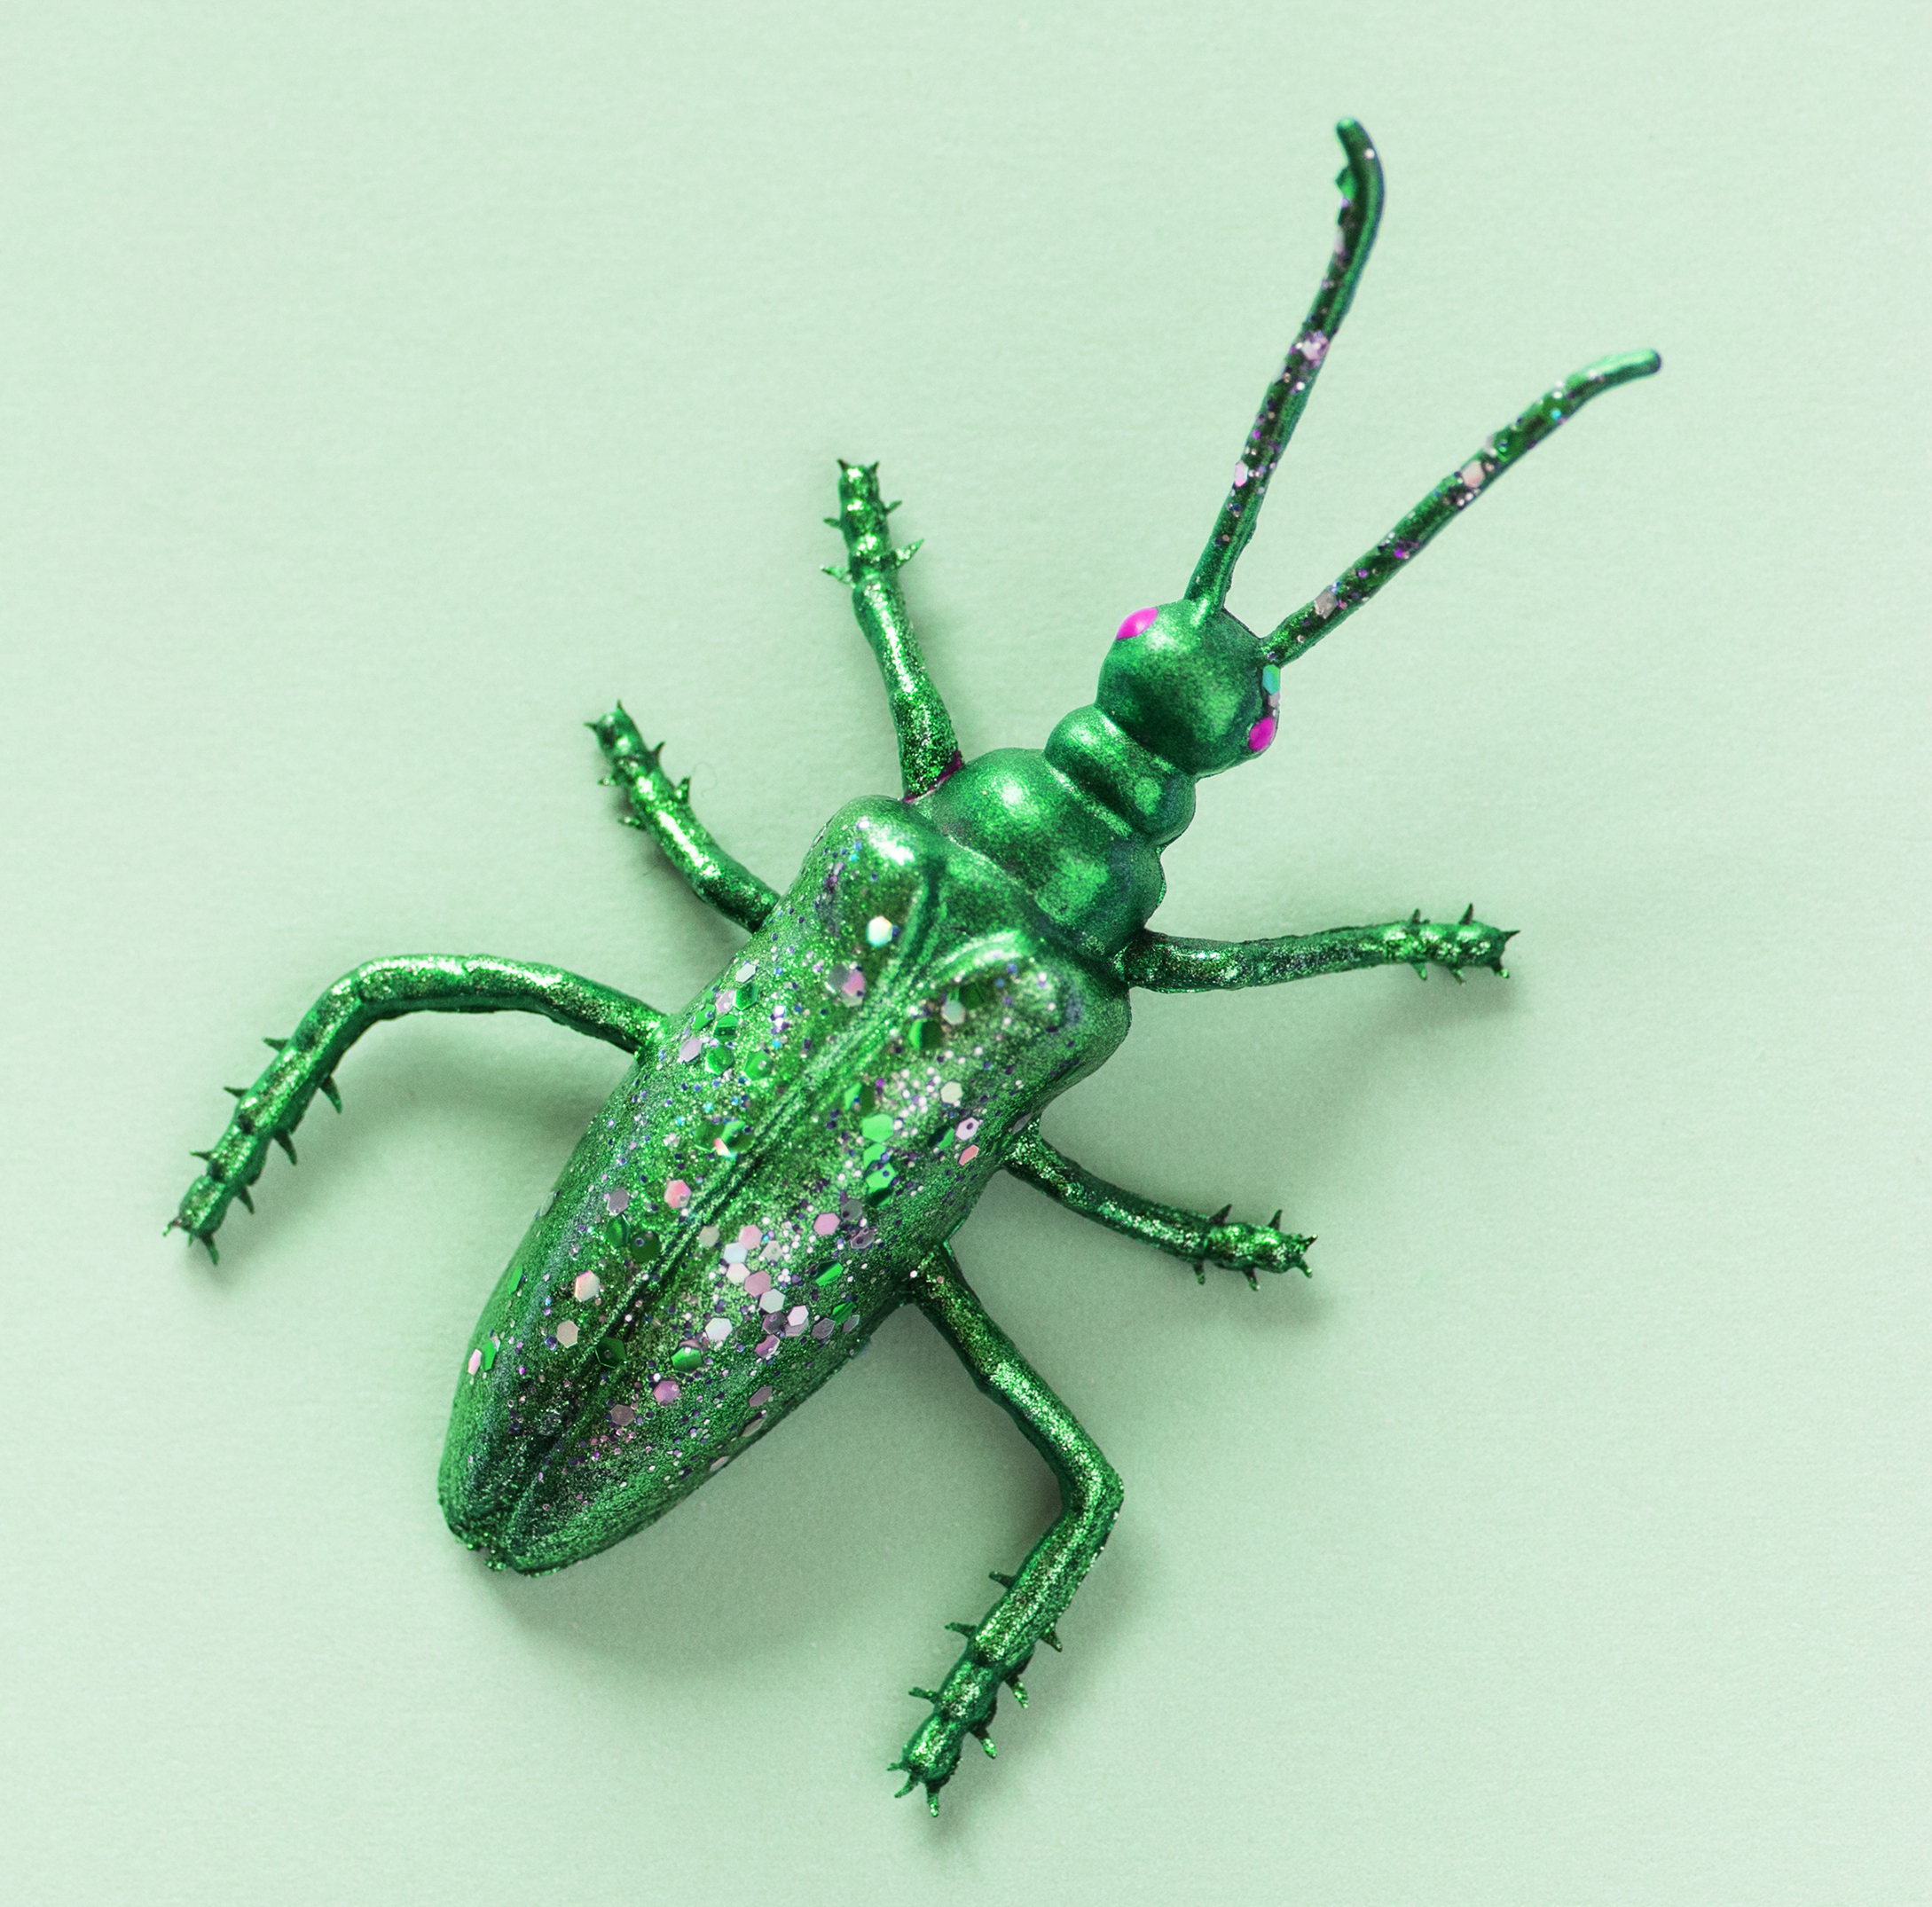 Colorful miniature bug on a paper